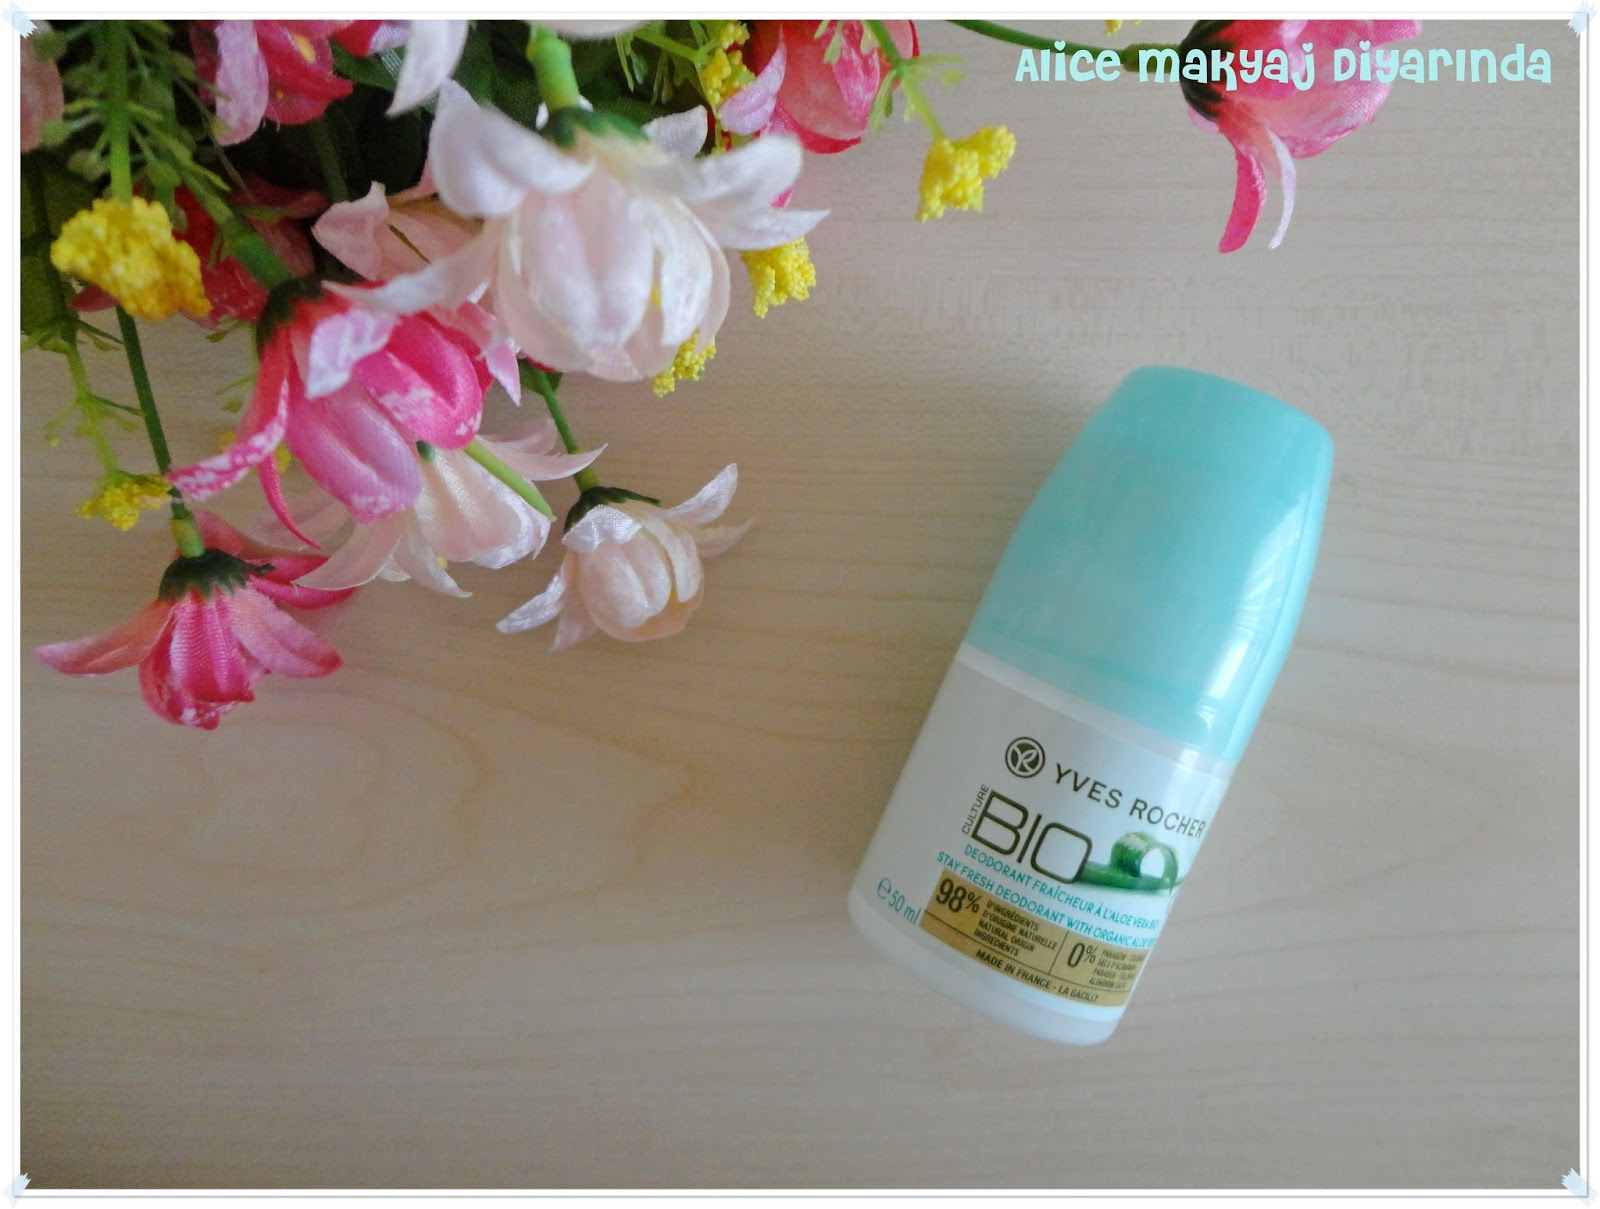 Yves Rocher Bio Organik Roll On